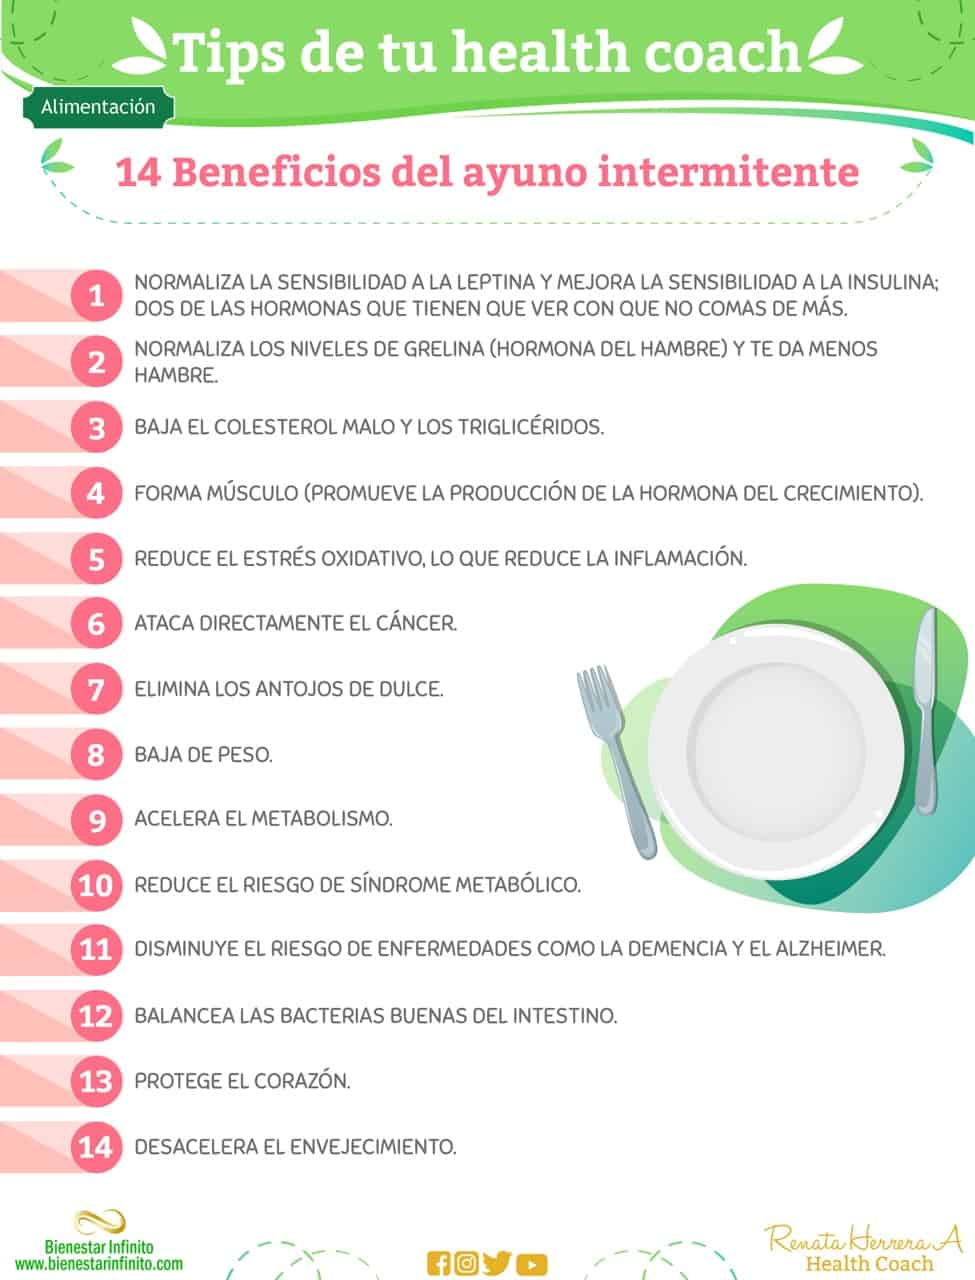 14 beneficios del ayuno intermitente